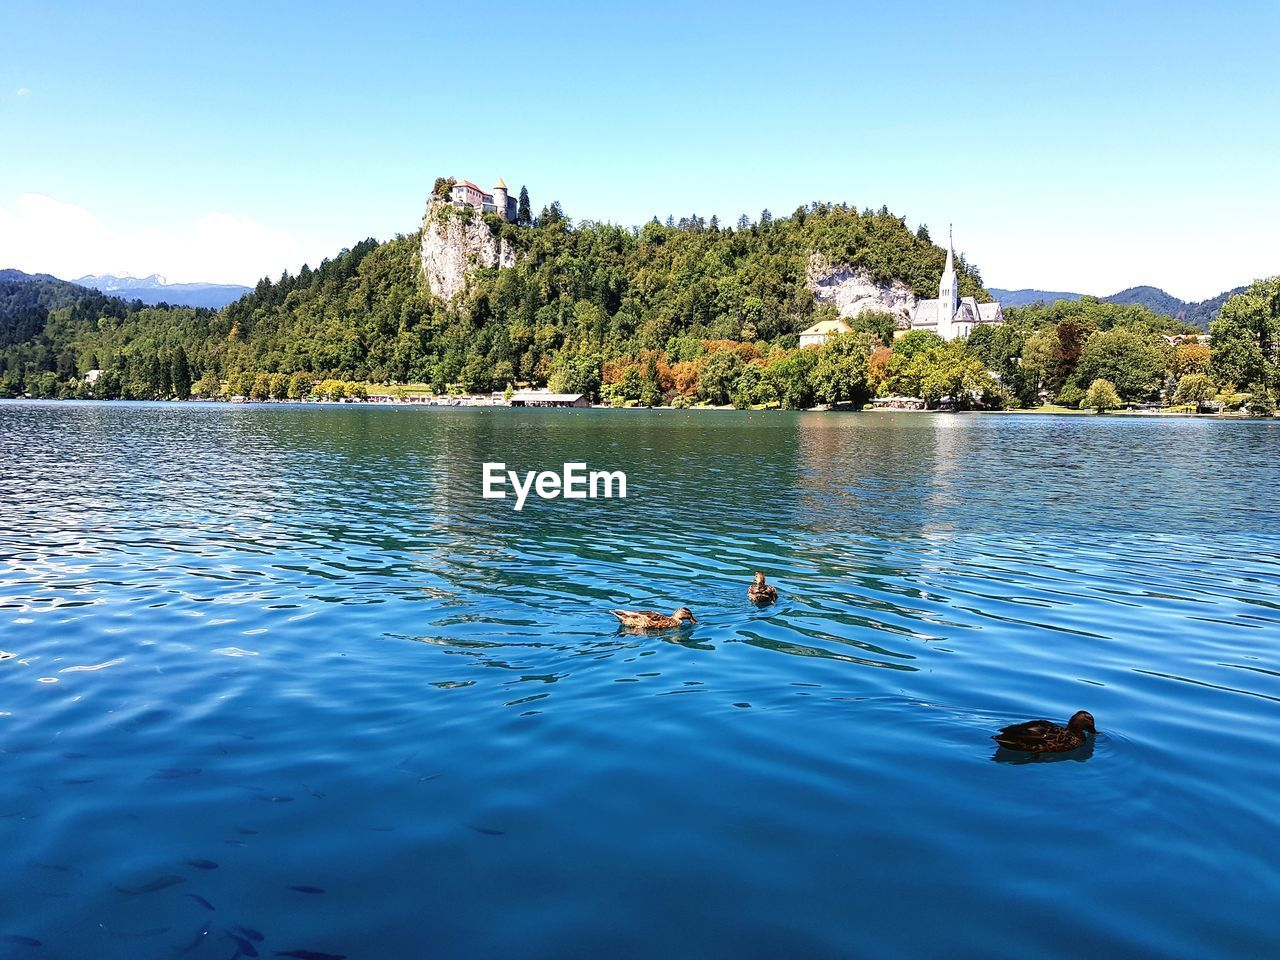 water, nature, tree, day, animal themes, no people, blue, outdoors, animals in the wild, mountain, lake, beauty in nature, swimming, waterfront, scenics, bird, sky